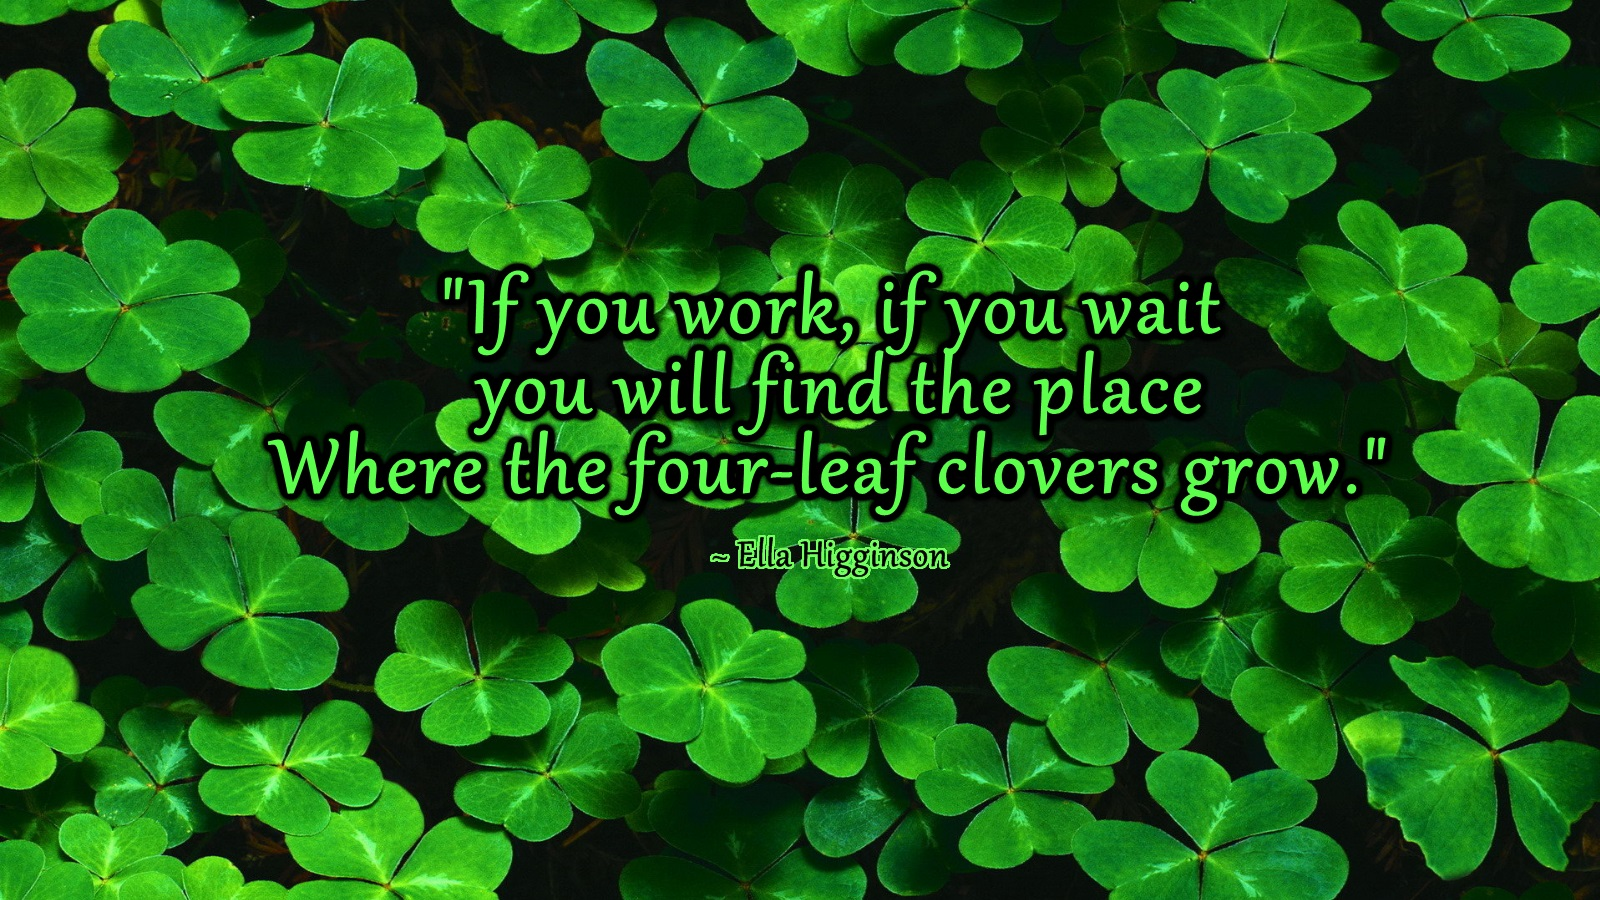 four leaf clover wallpaper Four Leaf Clovers Ella Higginson 1600x900